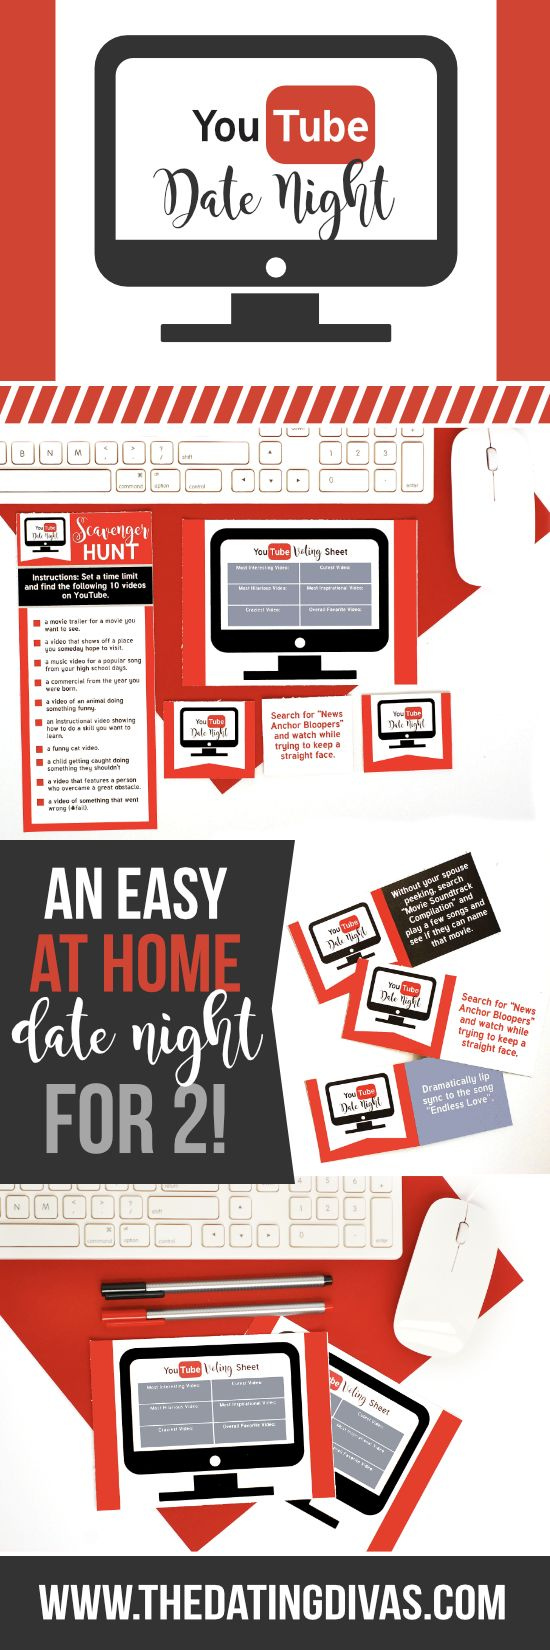 A date night full of scavenger hunts with challenges - all on the YouTube website. An at-home date night that is quick and easy to prep!